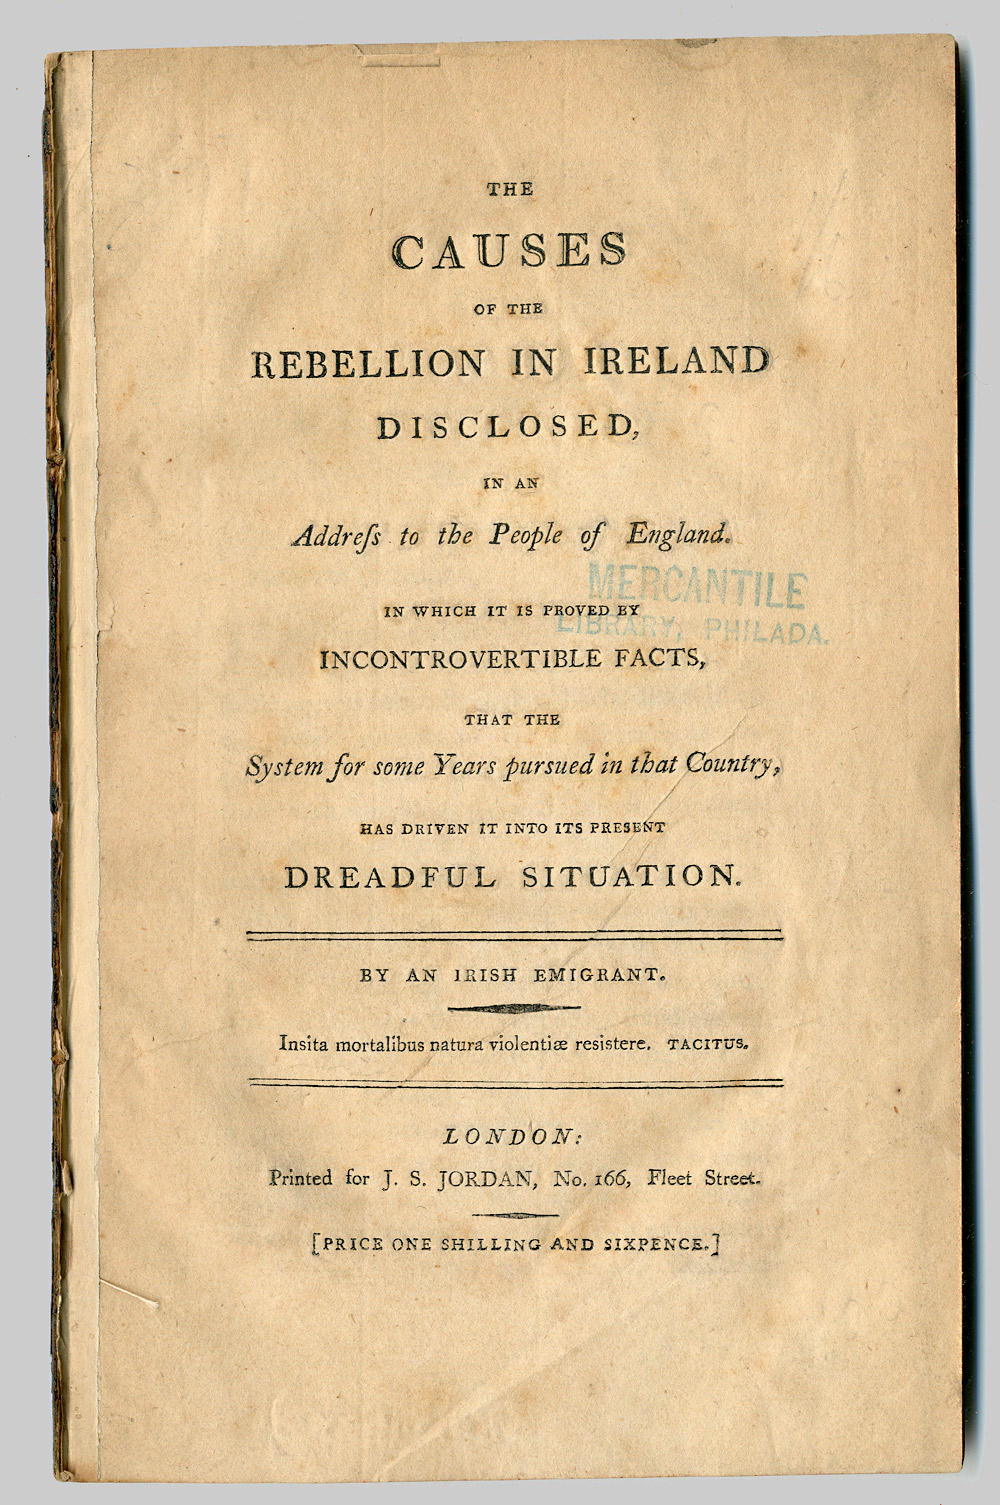 The Causes of the Rebellion in Ireland Disclosed